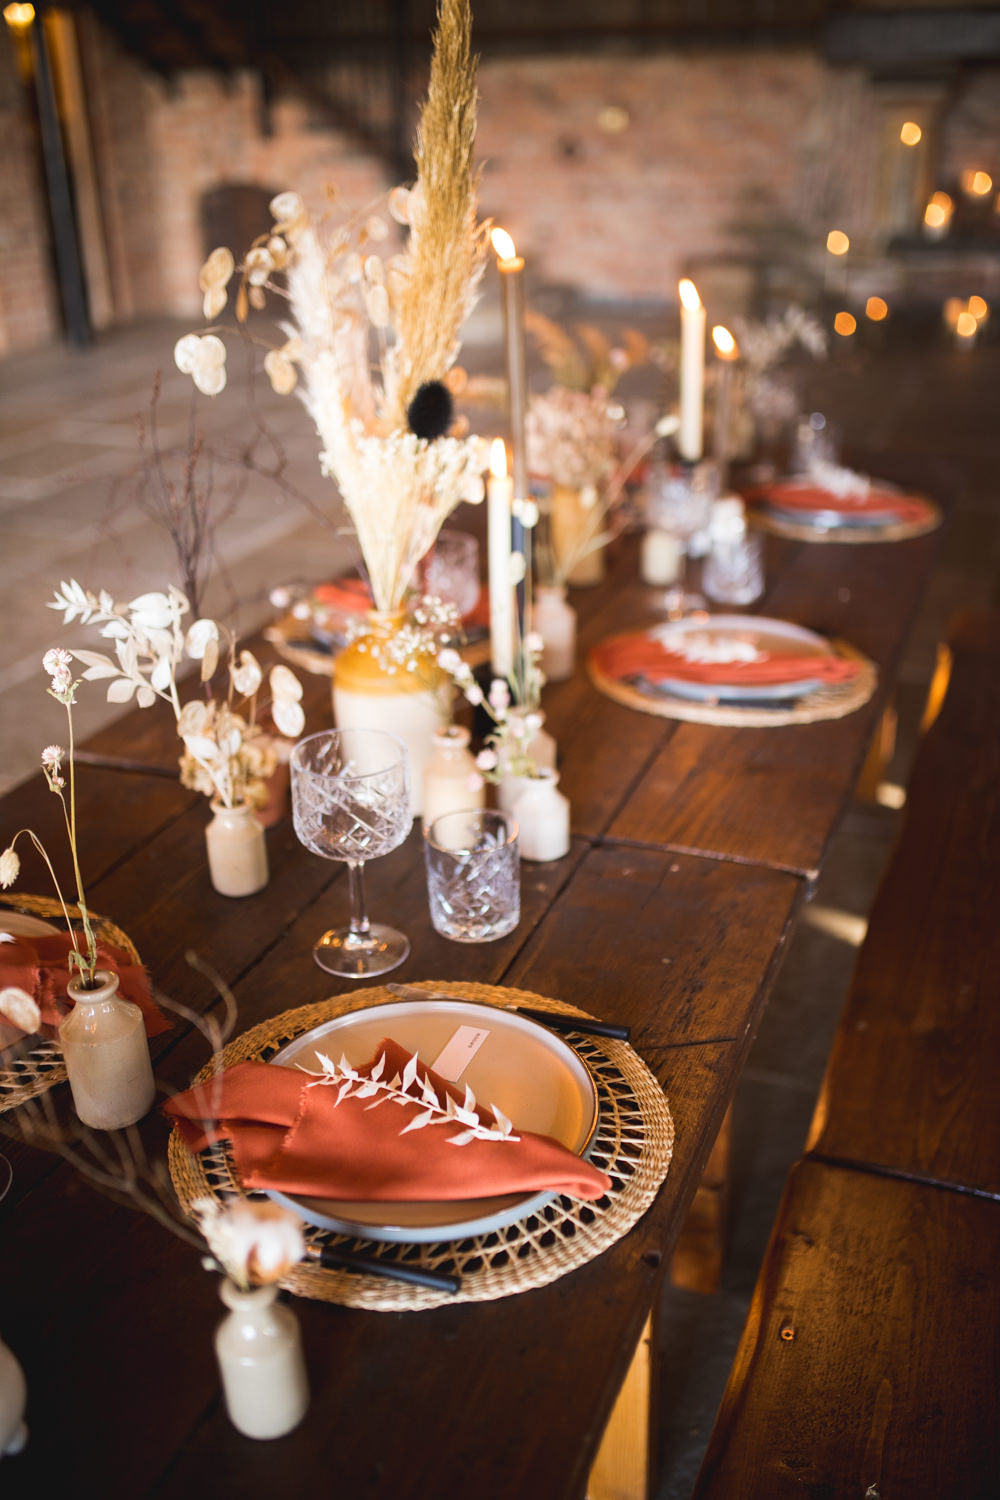 Table Decor Decorations Vases Flowers Candles Earthenware Ceramic Terracotta Napkins Dried Flower Wedding Ideas Dan Lambourne Photography